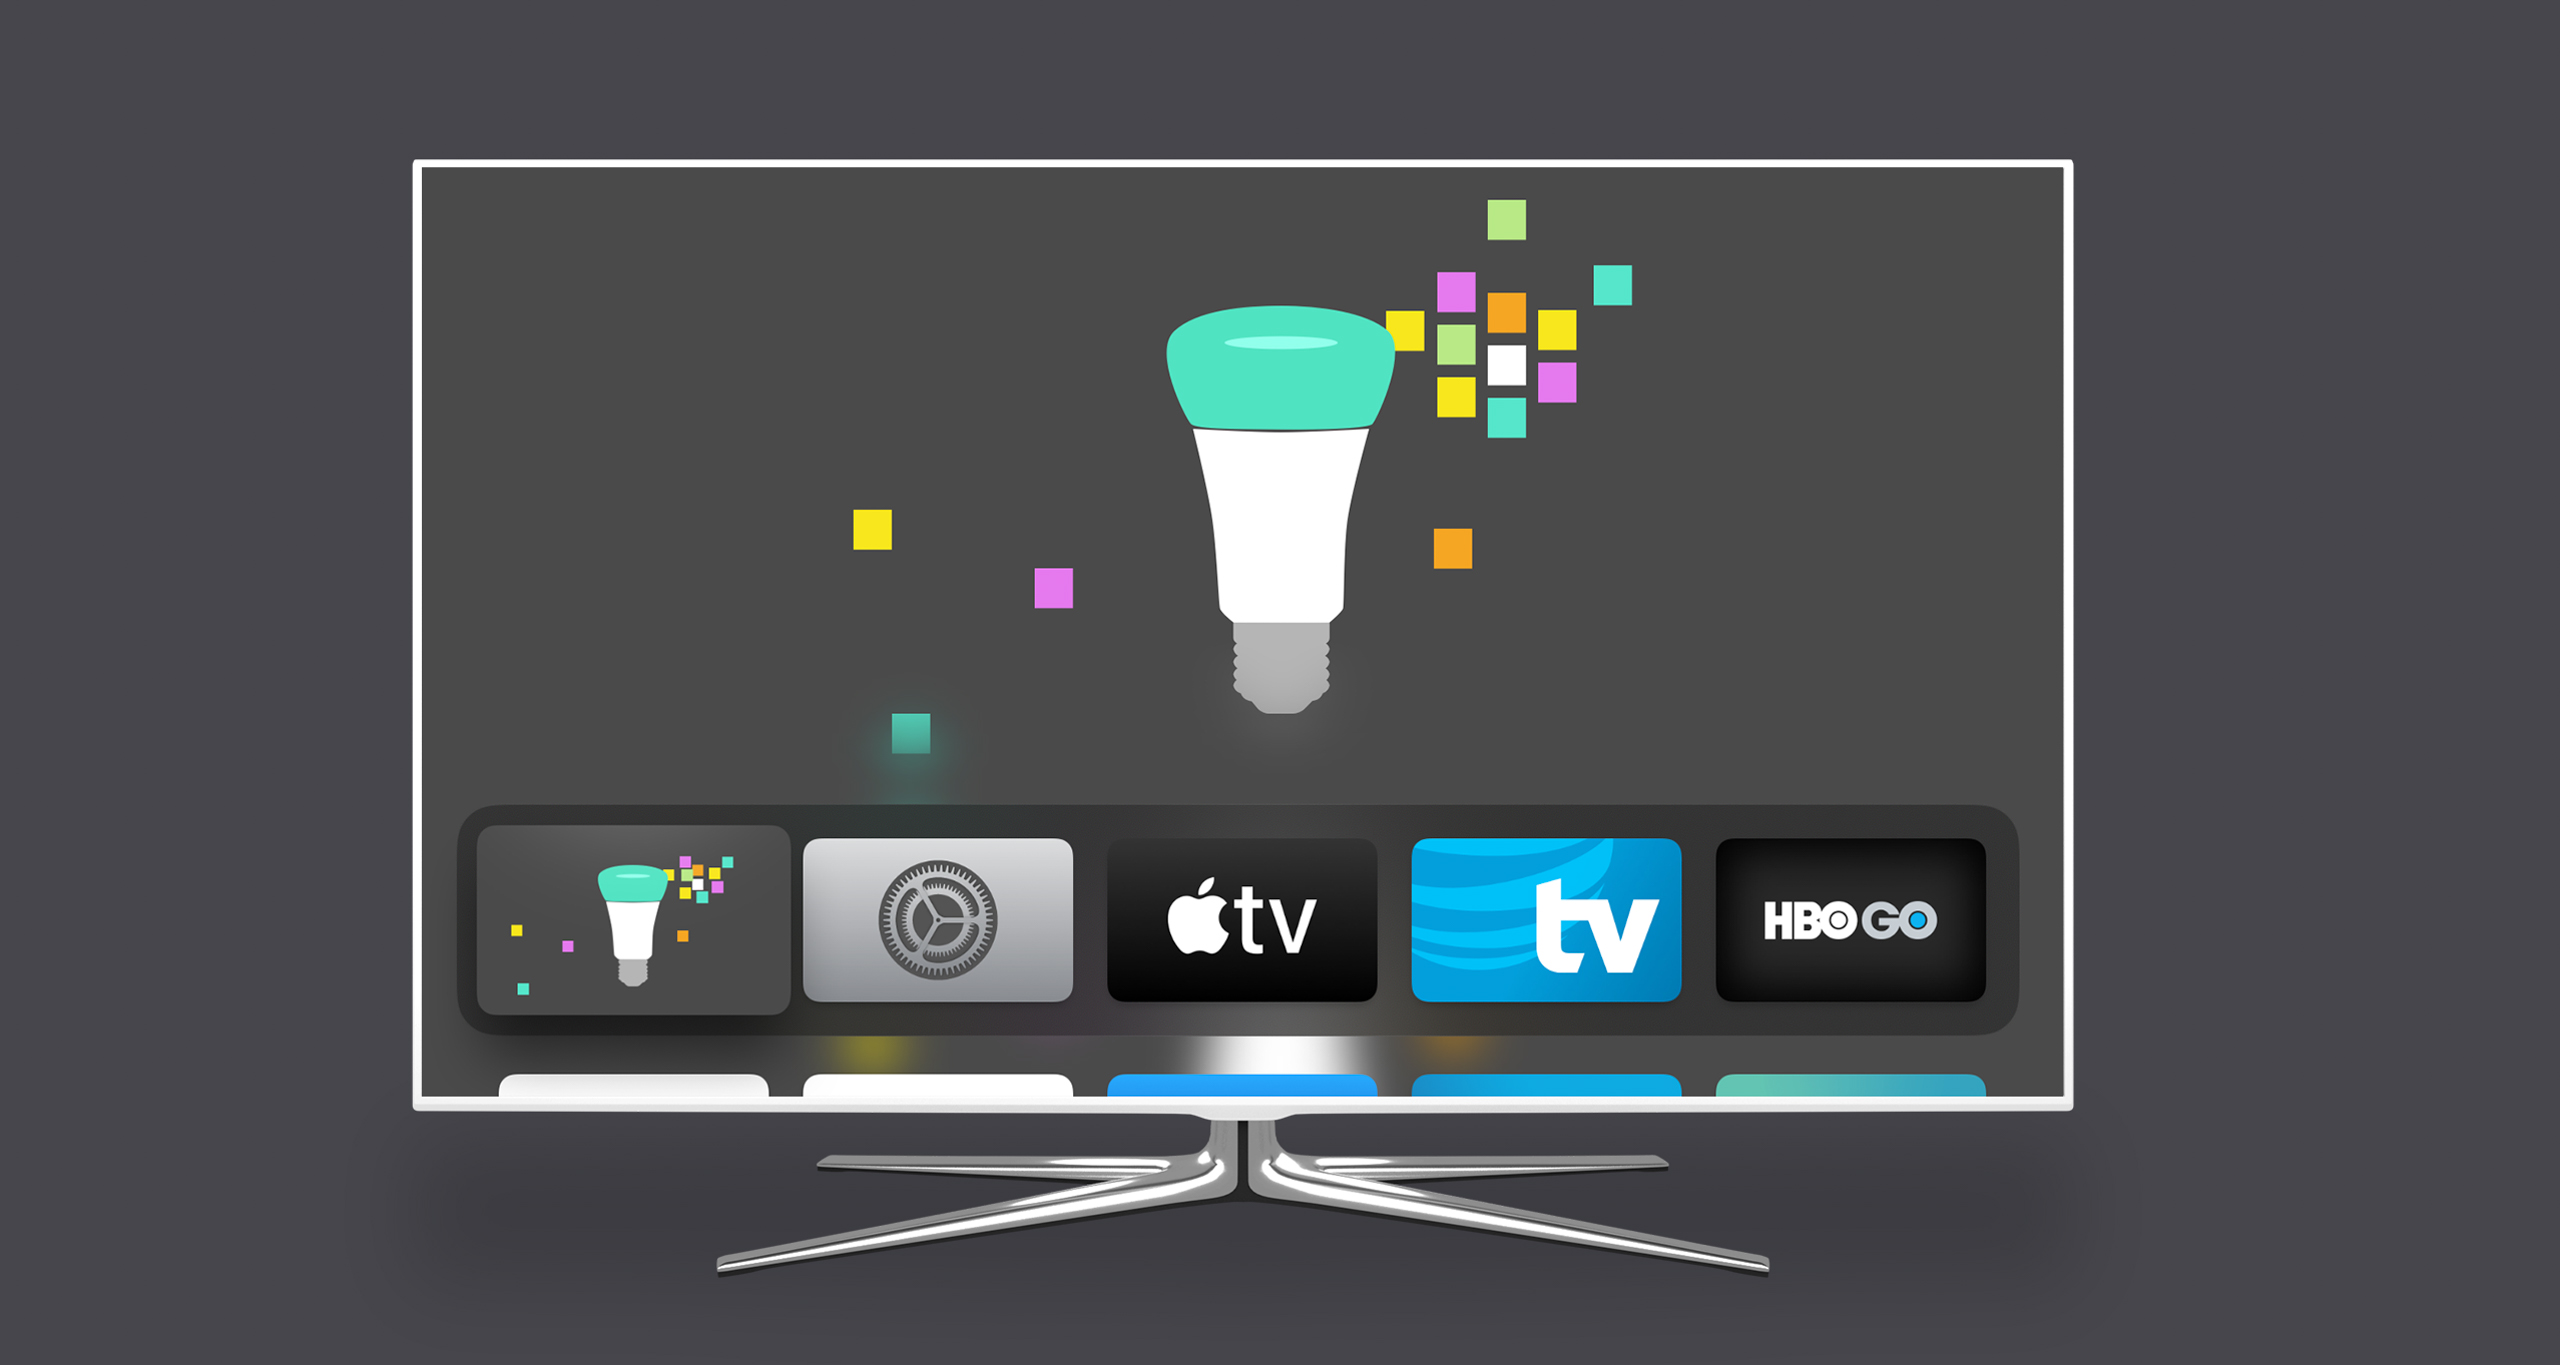 Review: Controlling Philips Hue Lighting on Apple TV With Hue TV App